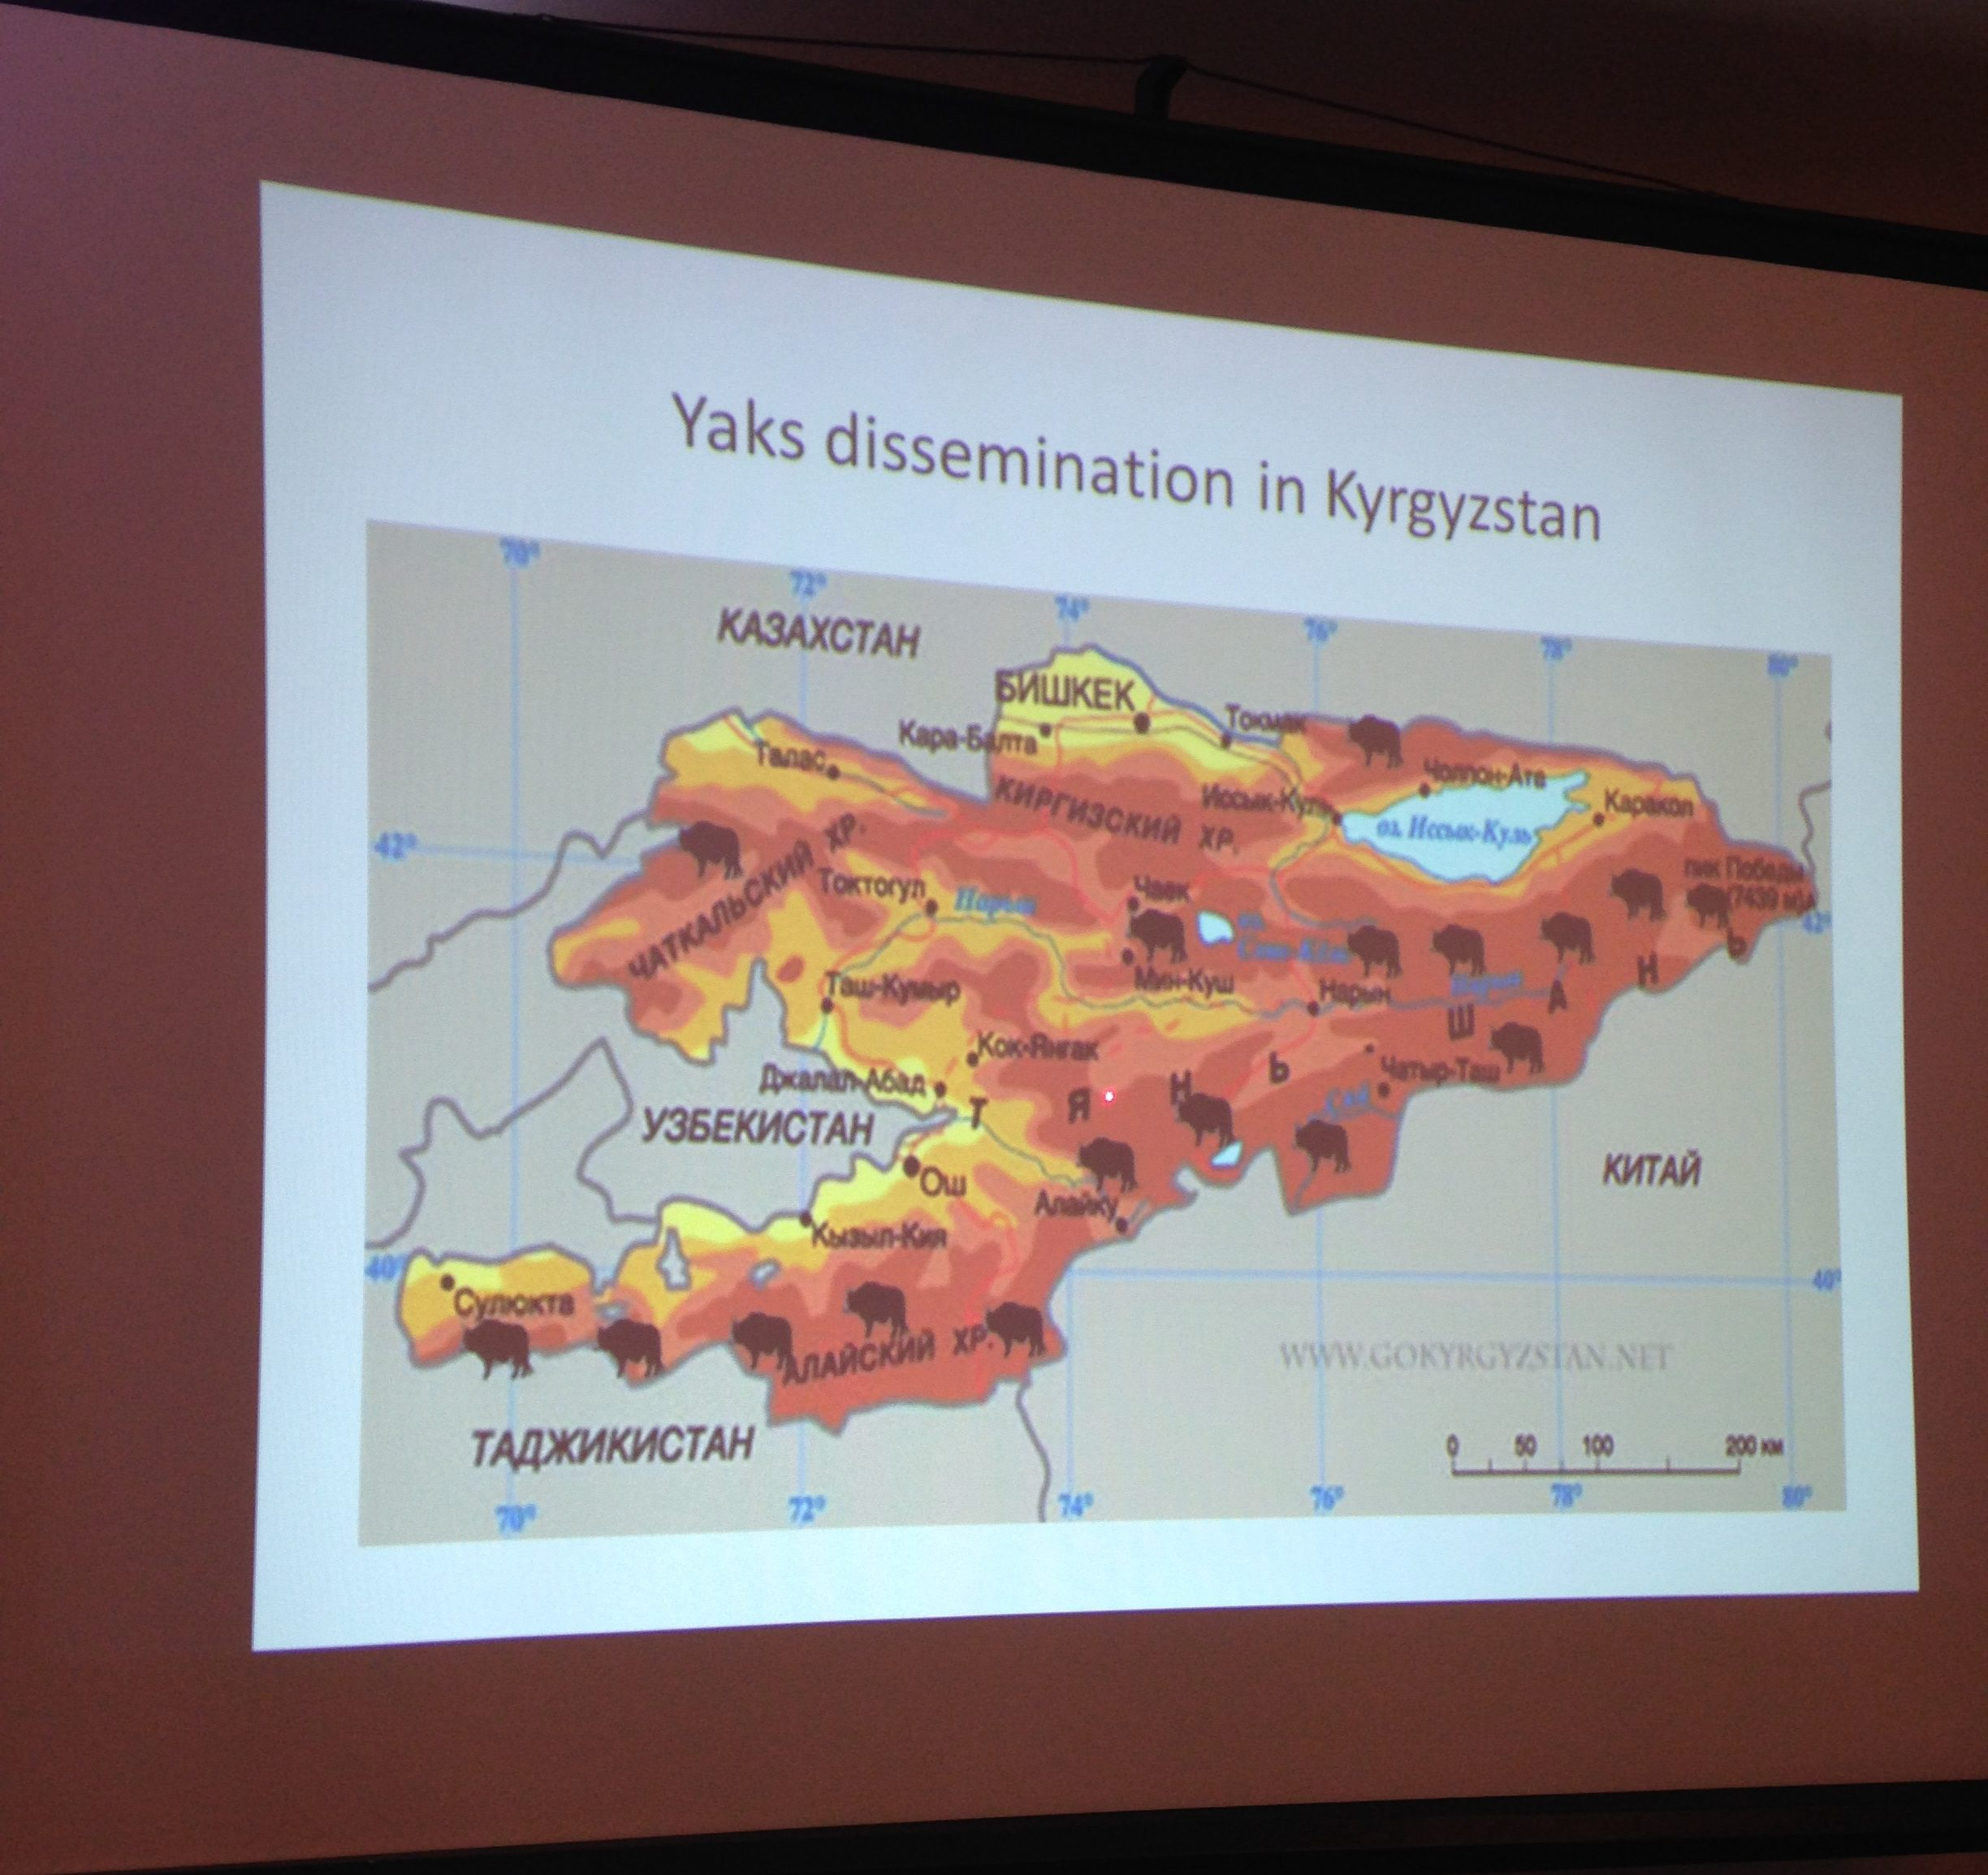 heat map of yak distribution in Kyrgyzstan. I am not making that up.